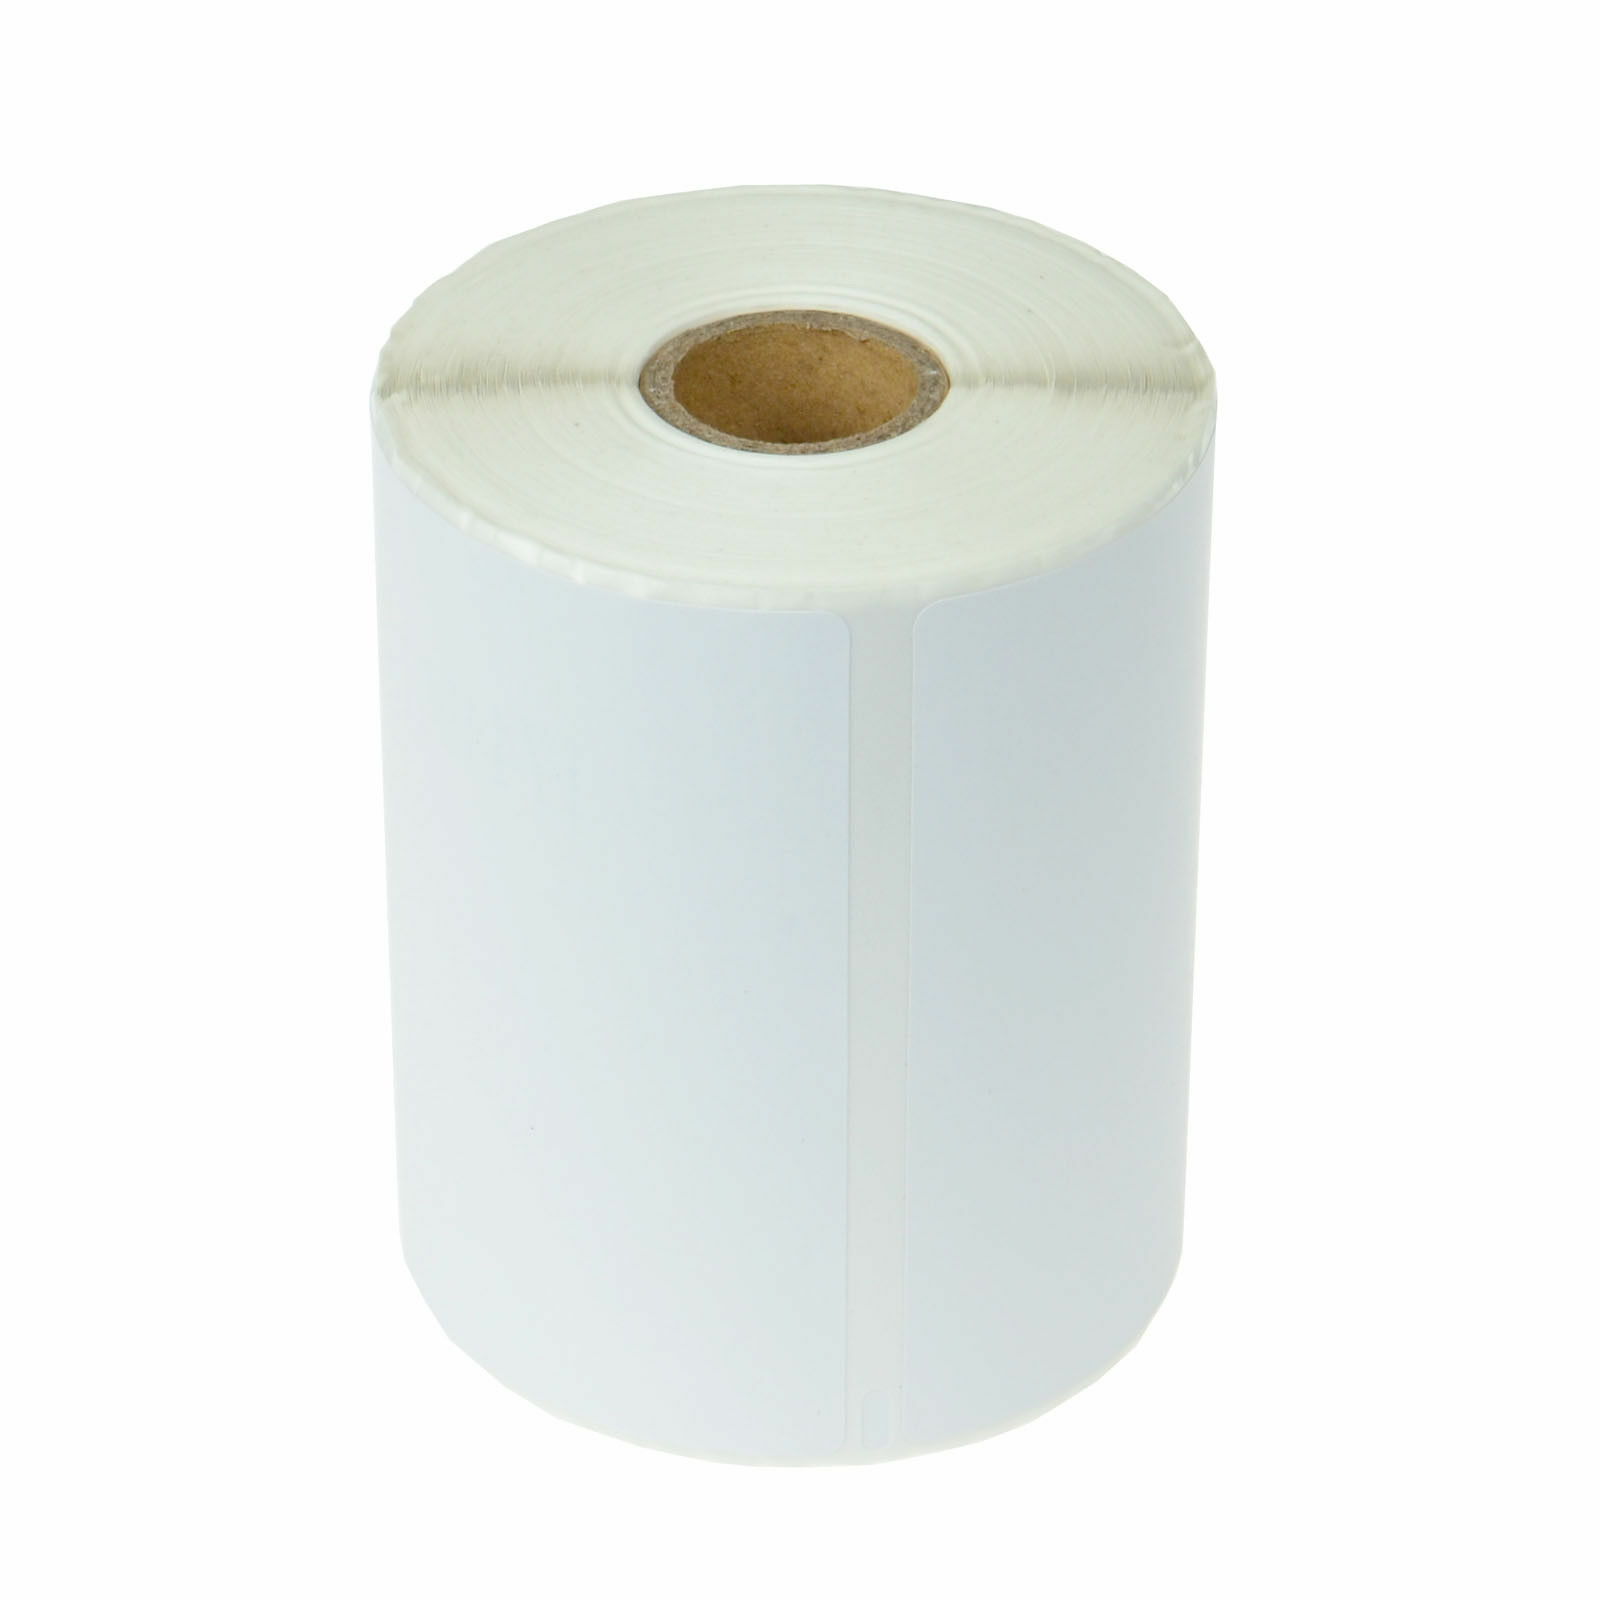 20 Rolls label 4x6 Direct Thermal Shipping 5000 labels Zebra